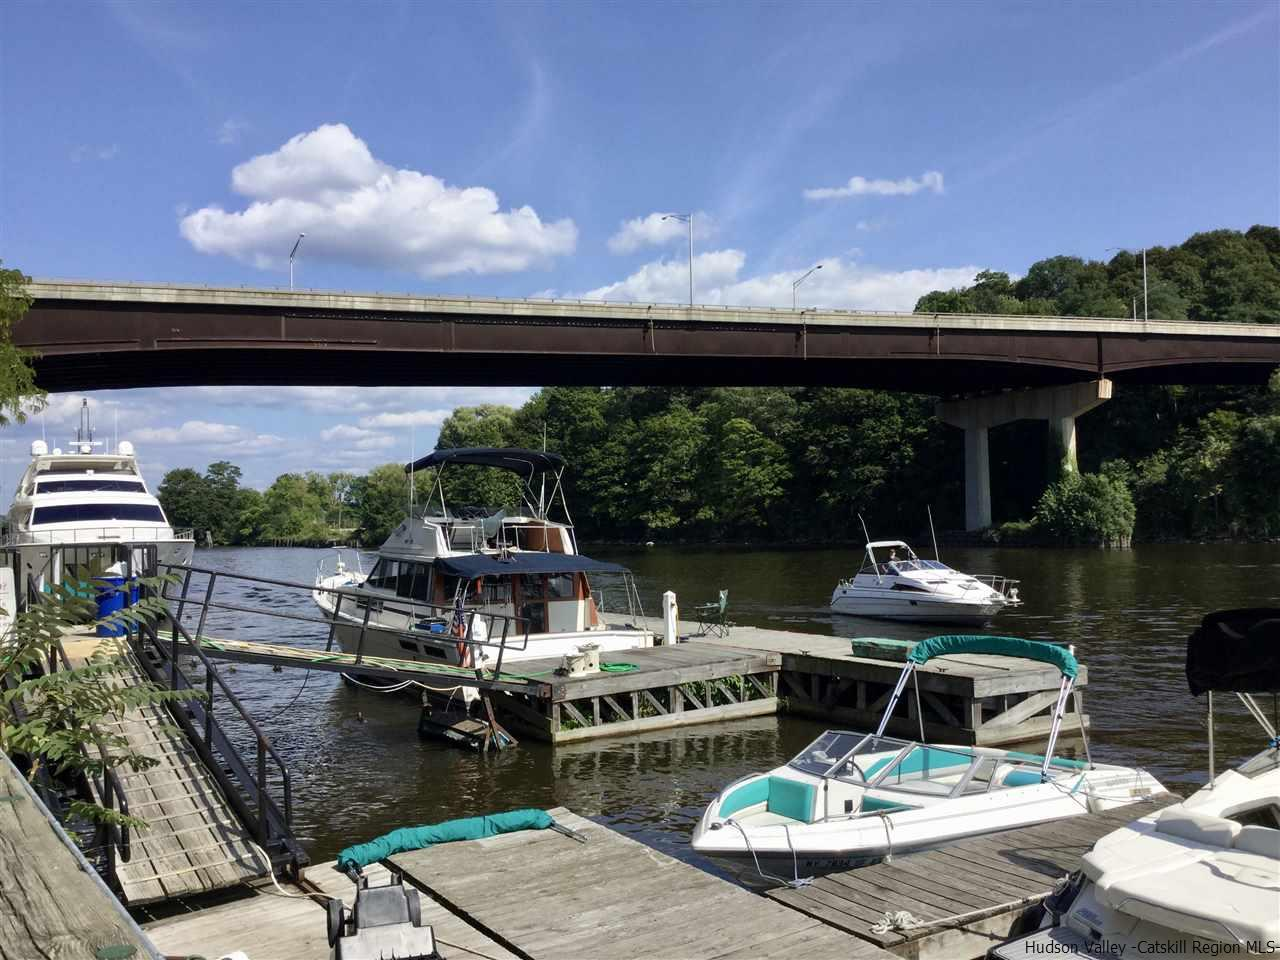 Historic Rondout    a favorite spot for Boaters sailing the HUDSON RIVER